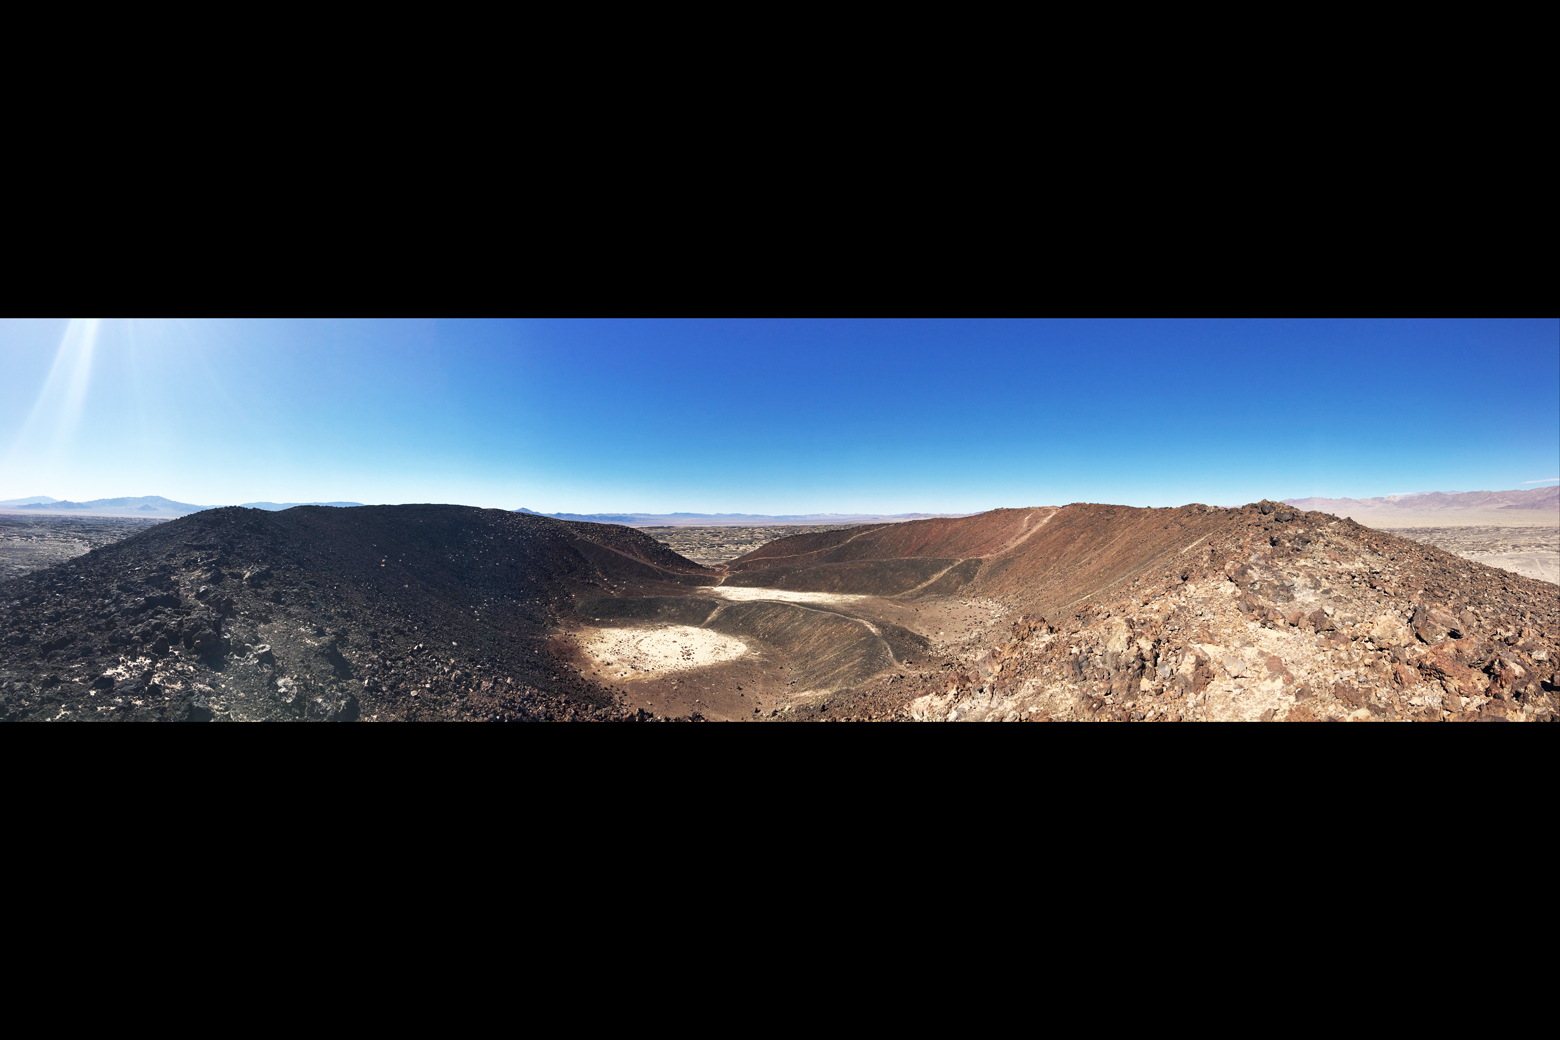 Panoramic of Amboy Crater from the rim